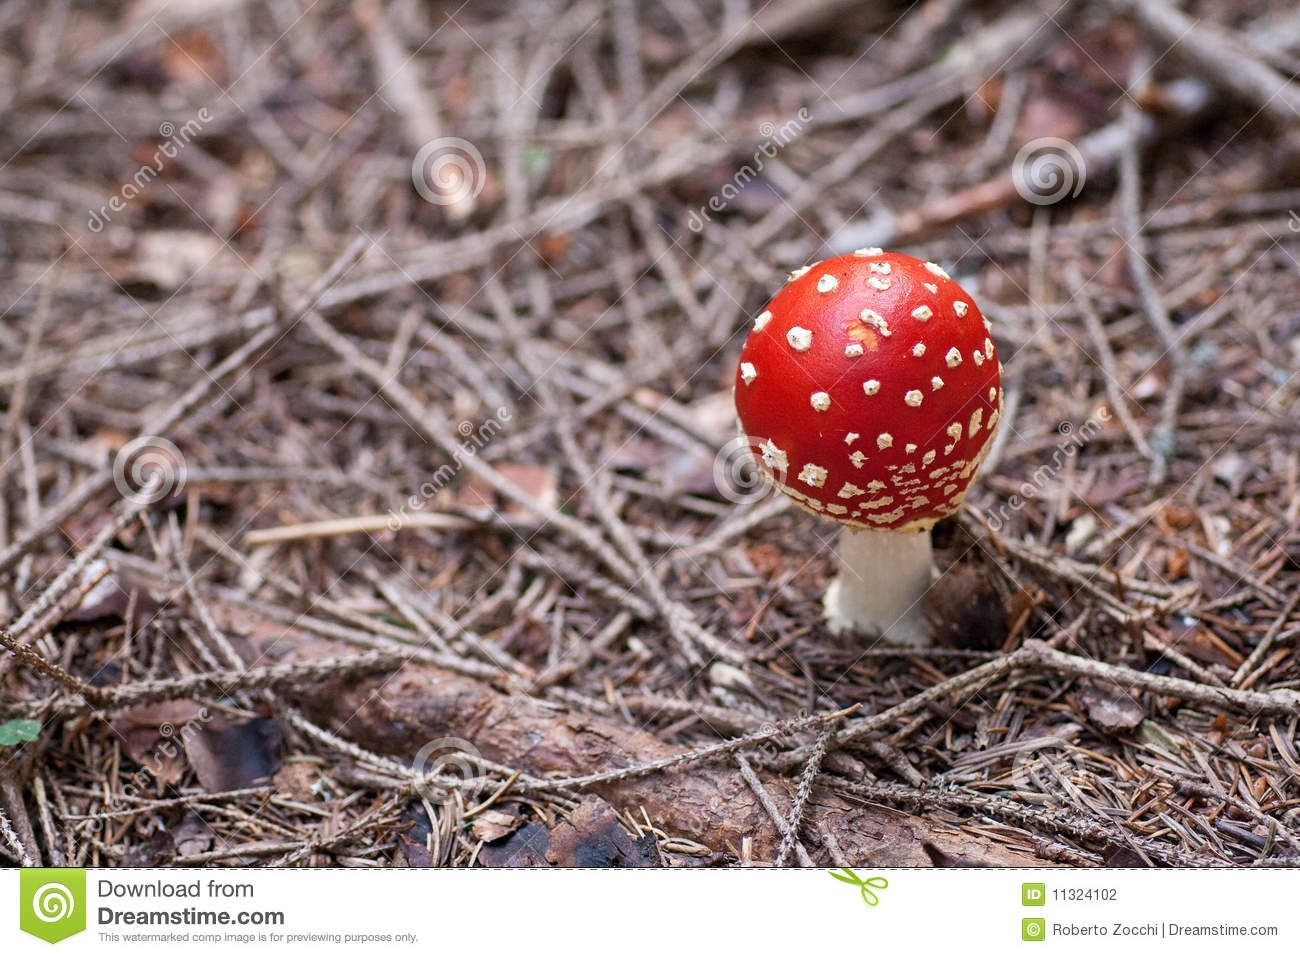 Wulstling muscaria